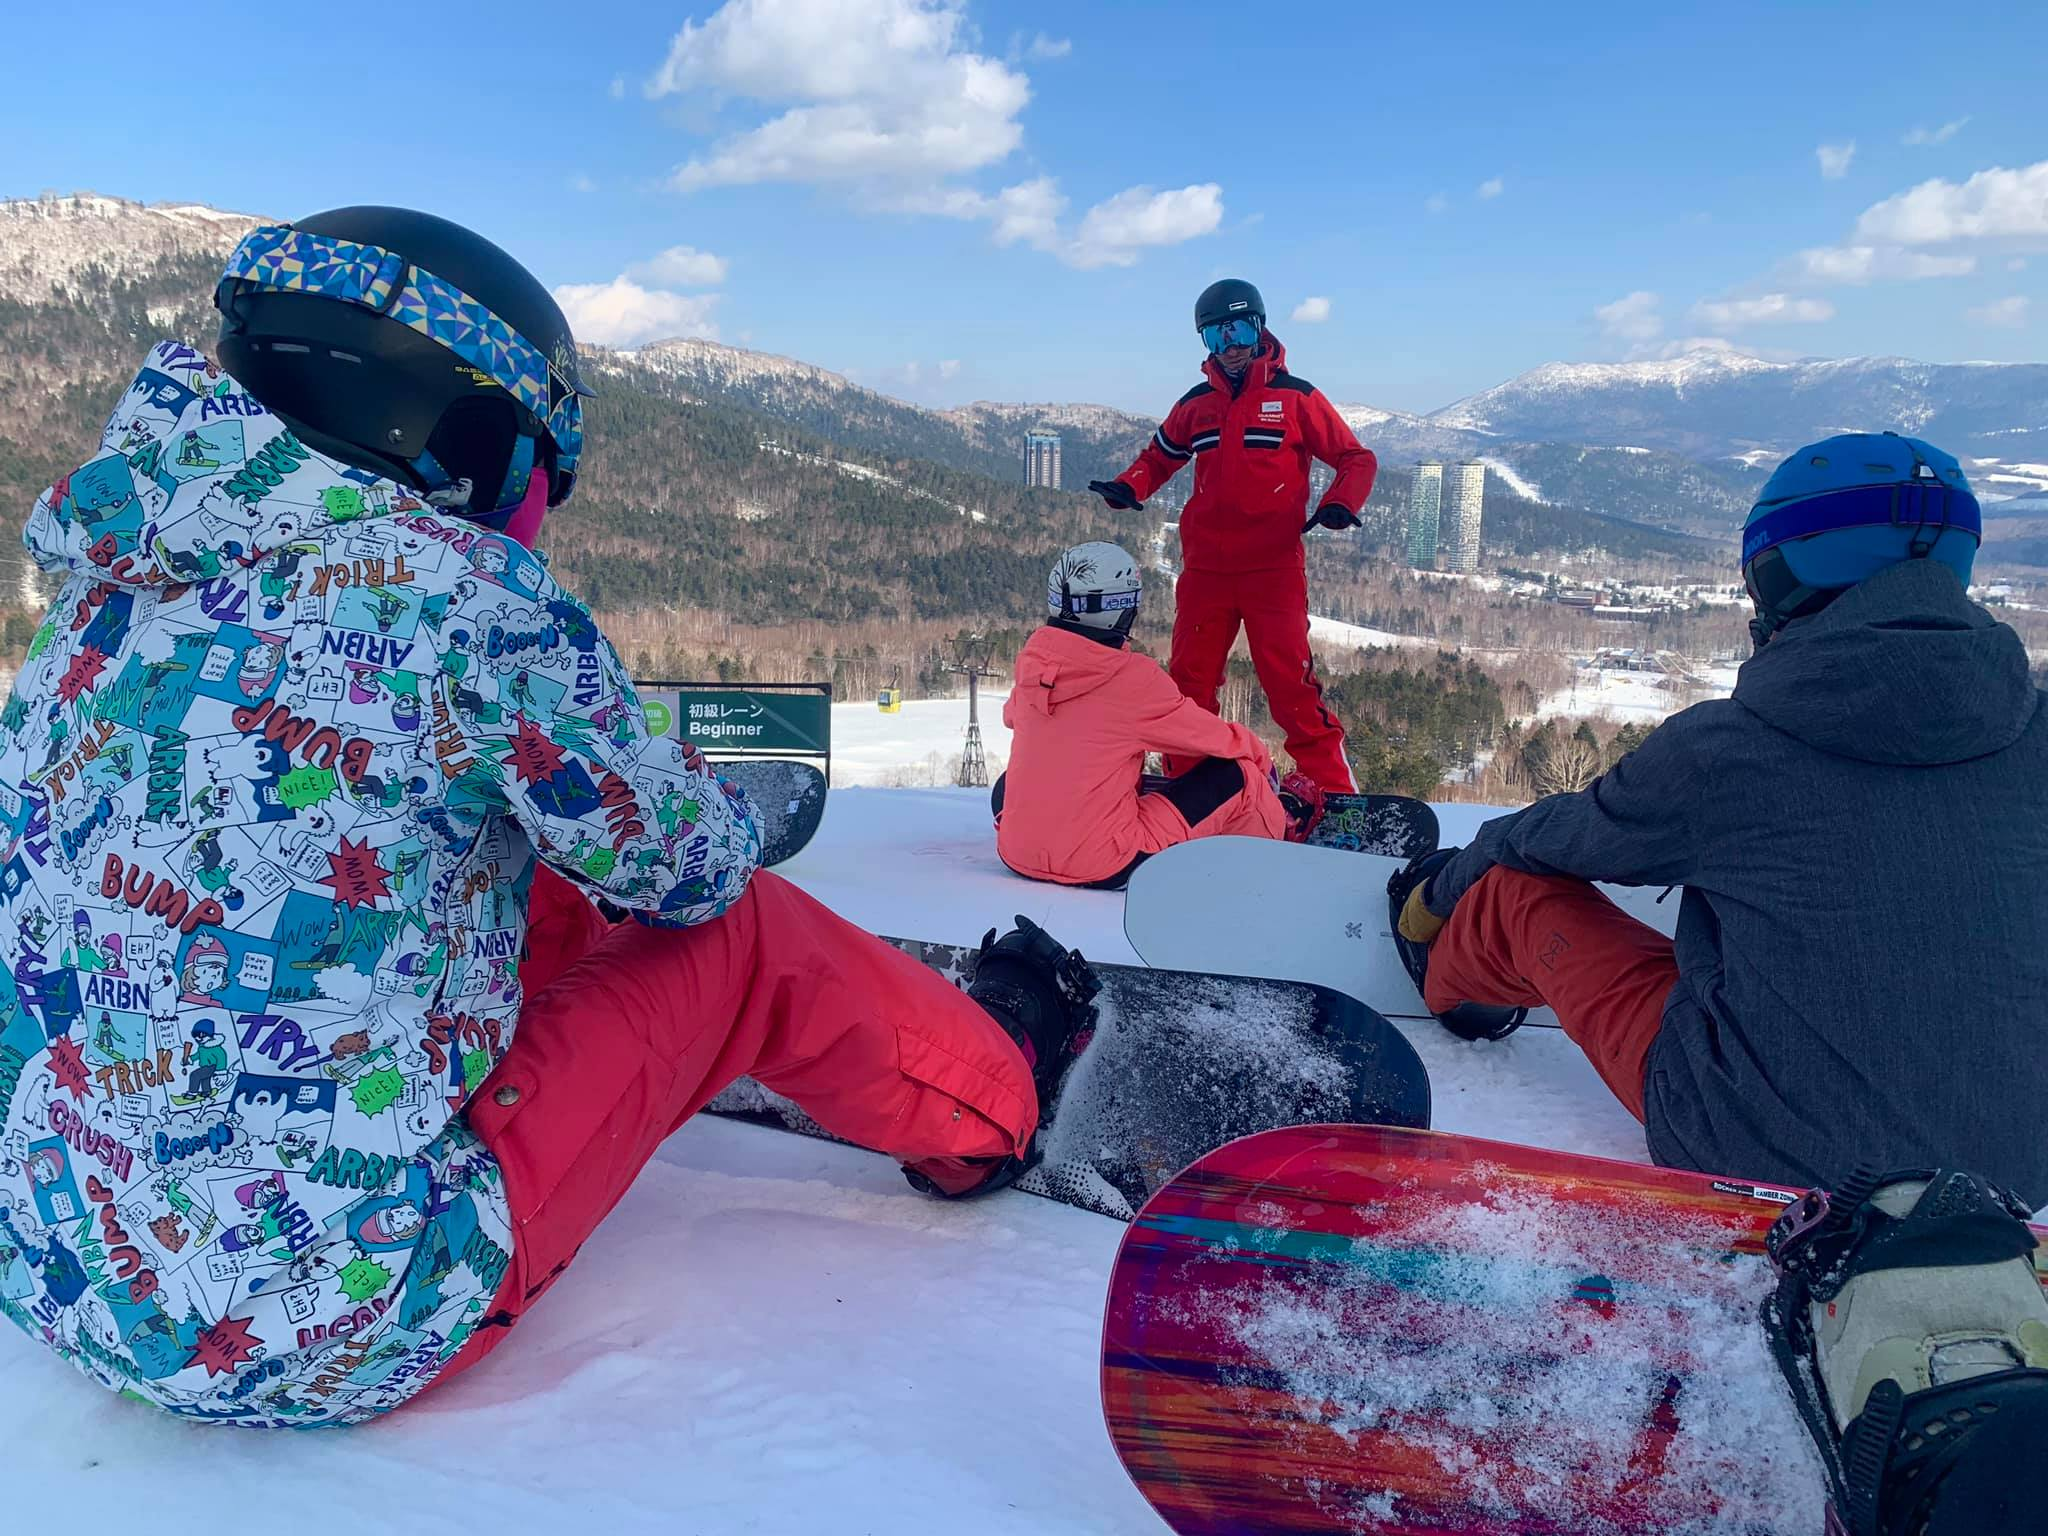 SNOWBOARD LESSONS -